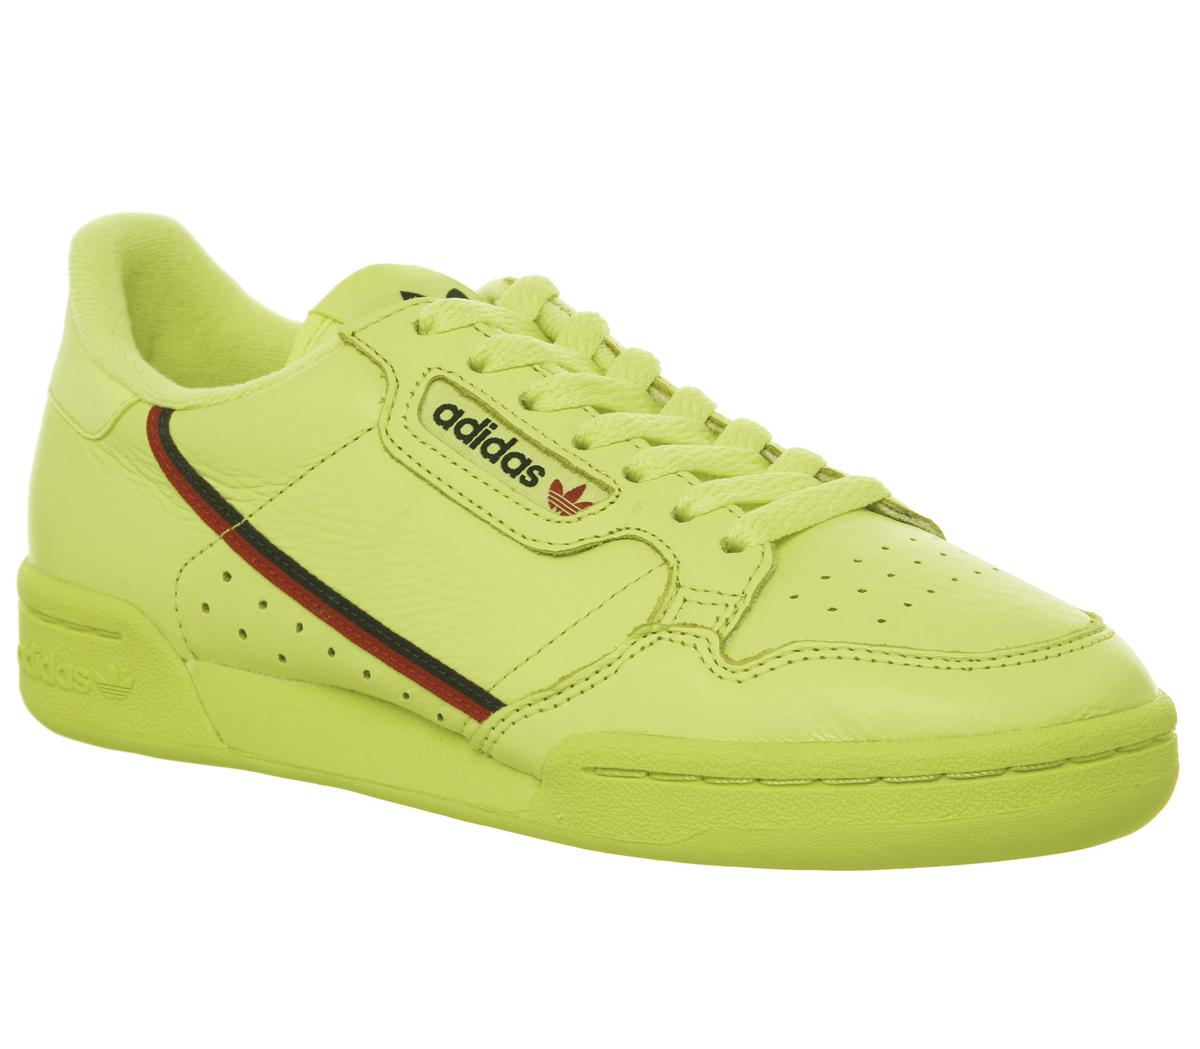 Mens Adidas Continental 80 S Semi Frozen Yellow Scarlet Collegiate Navy